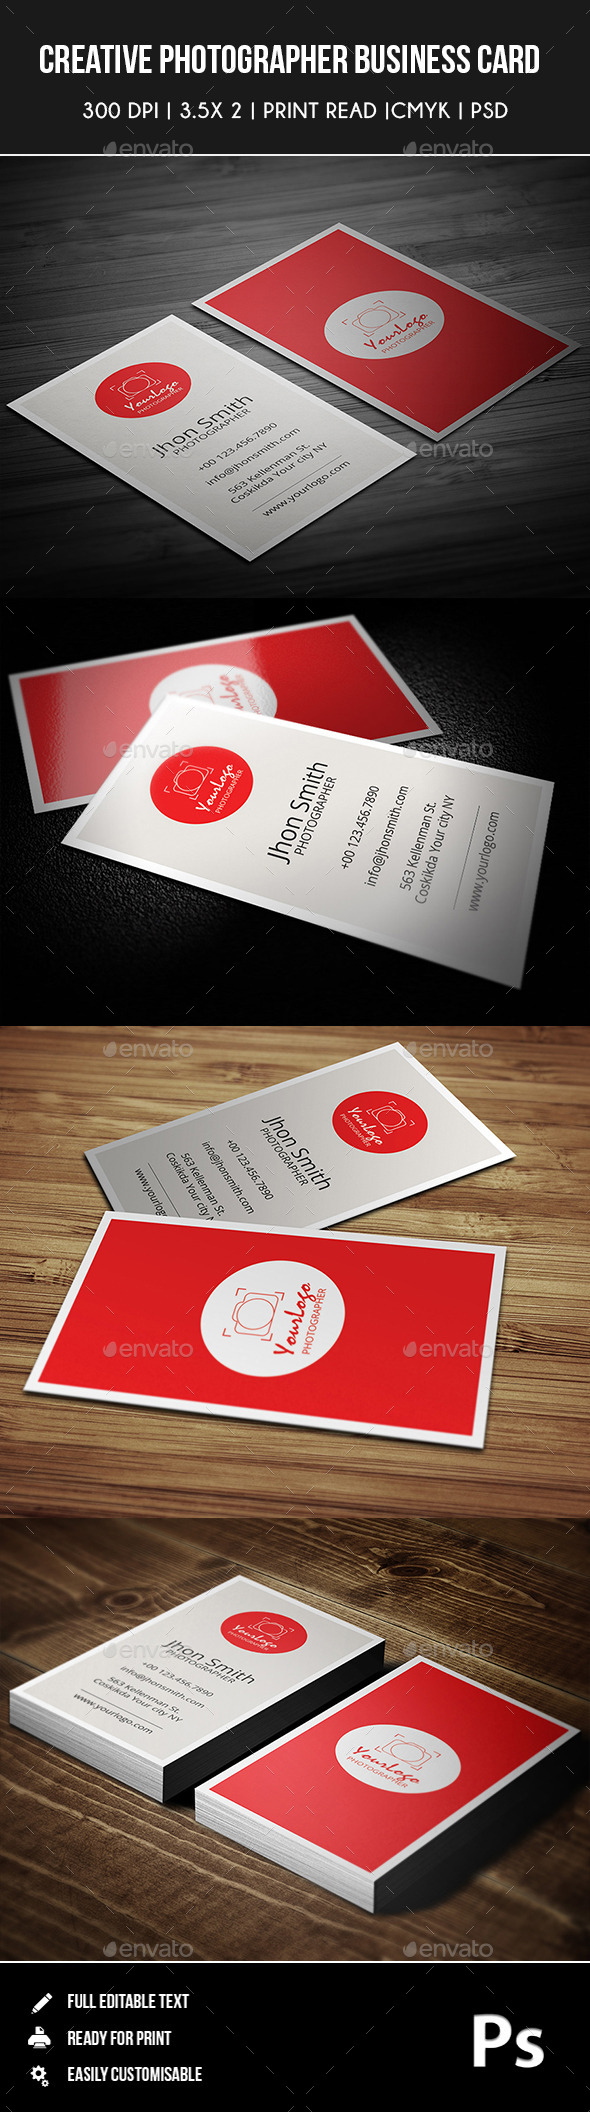 Creative Photgrapher Business Card 03 - Creative Business Cards